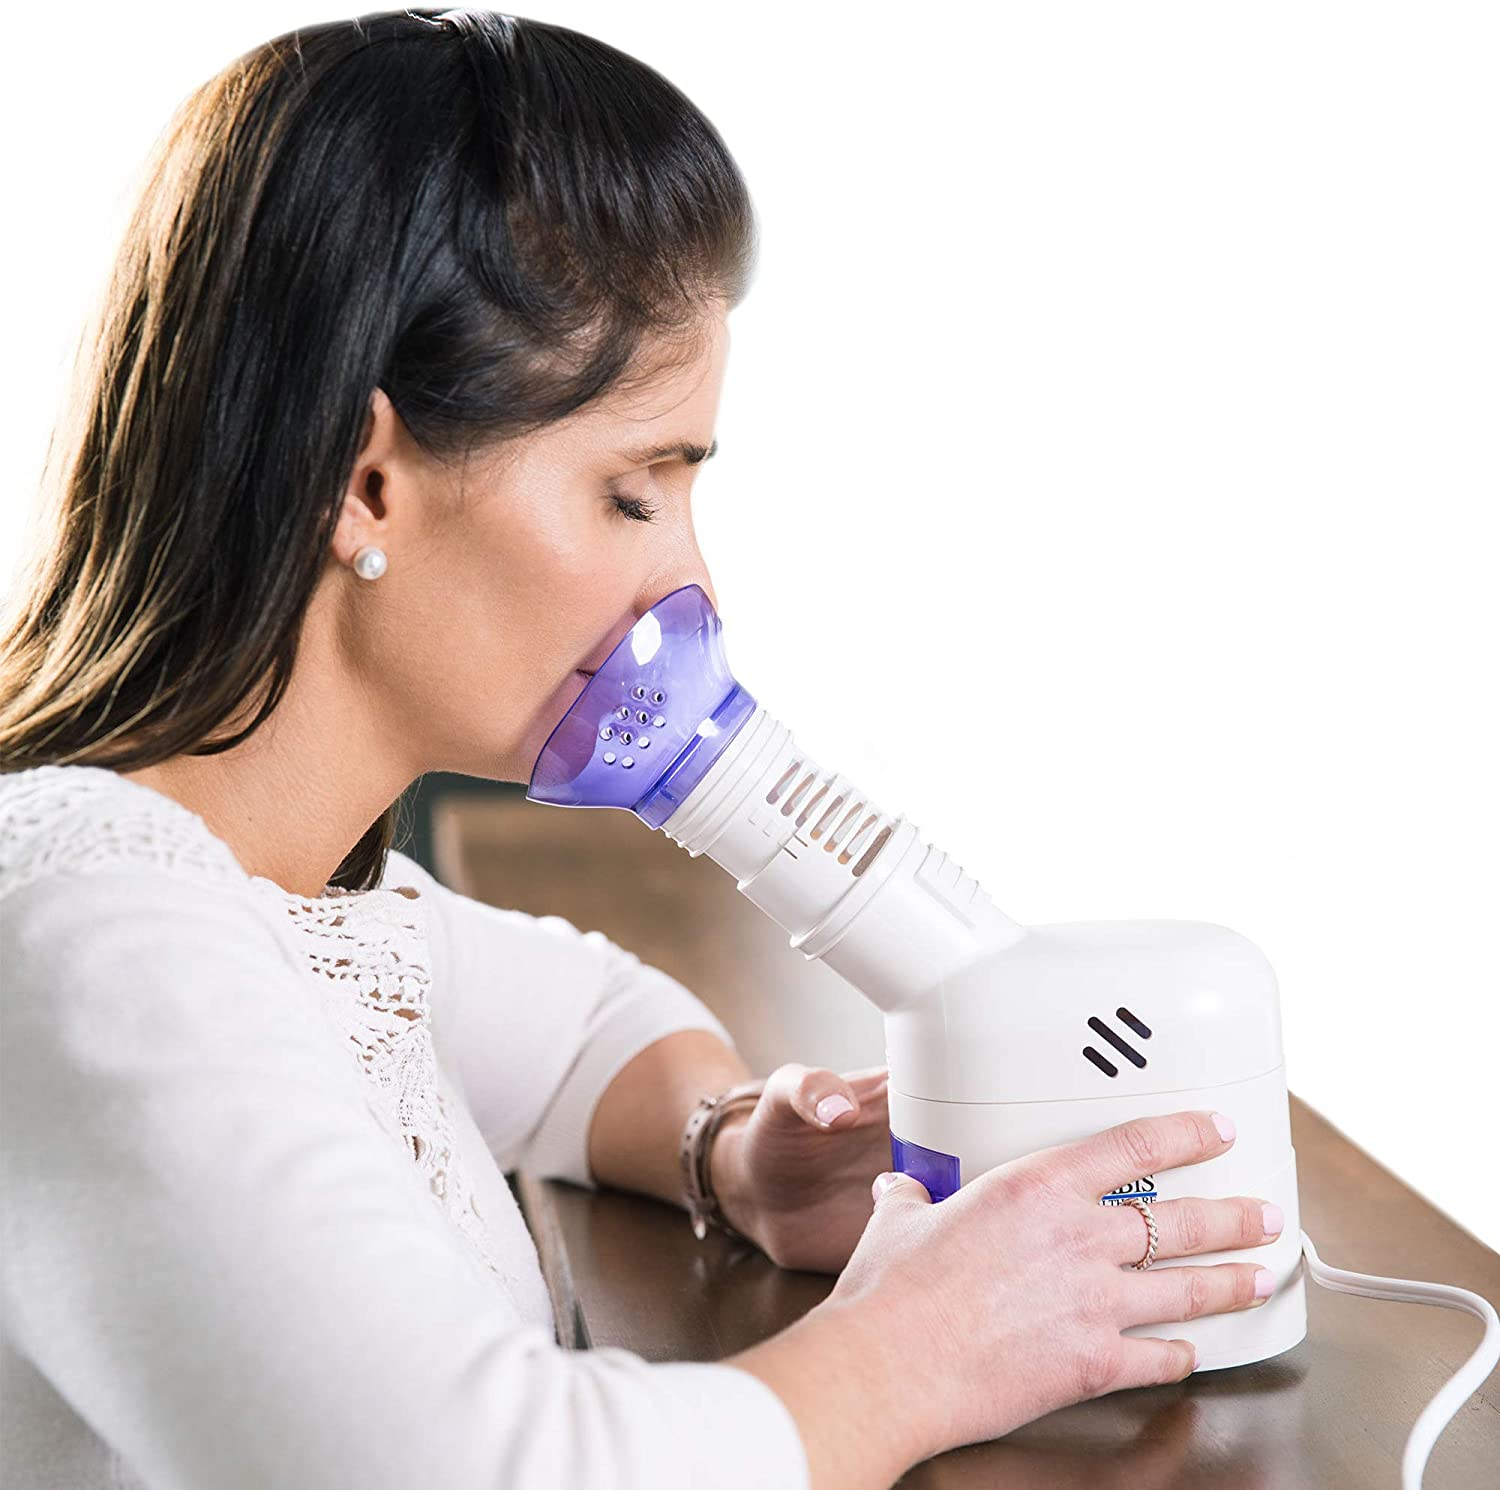 Top 6 Best Nebulizer For Kids (2020 Reviews & Buying Guide) 6